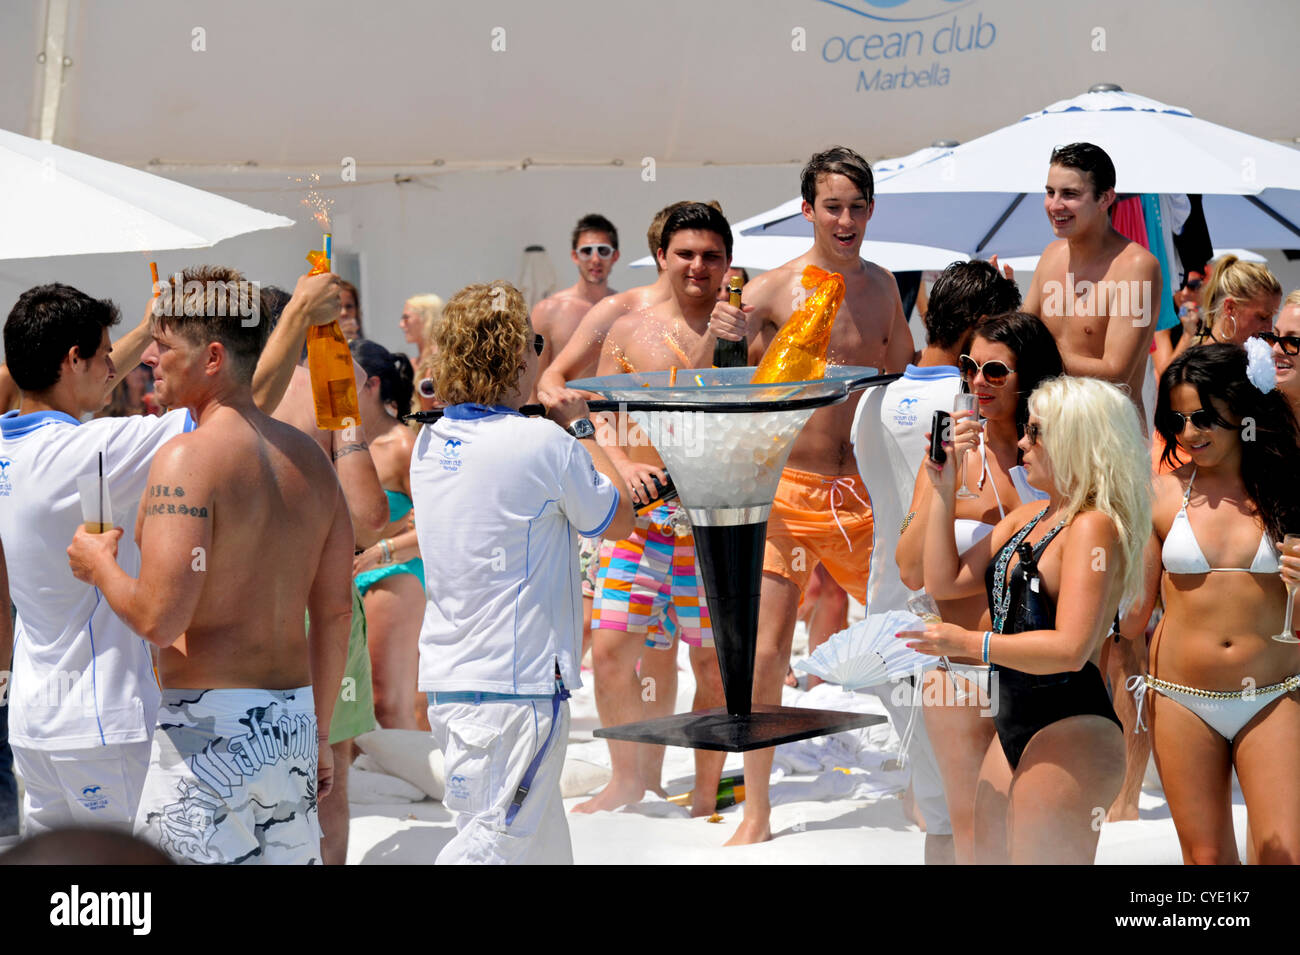 Waiters carrying a Methuselah bottle of Crystal champagne in a large ice buckets to clients at pool party . - Stock Image